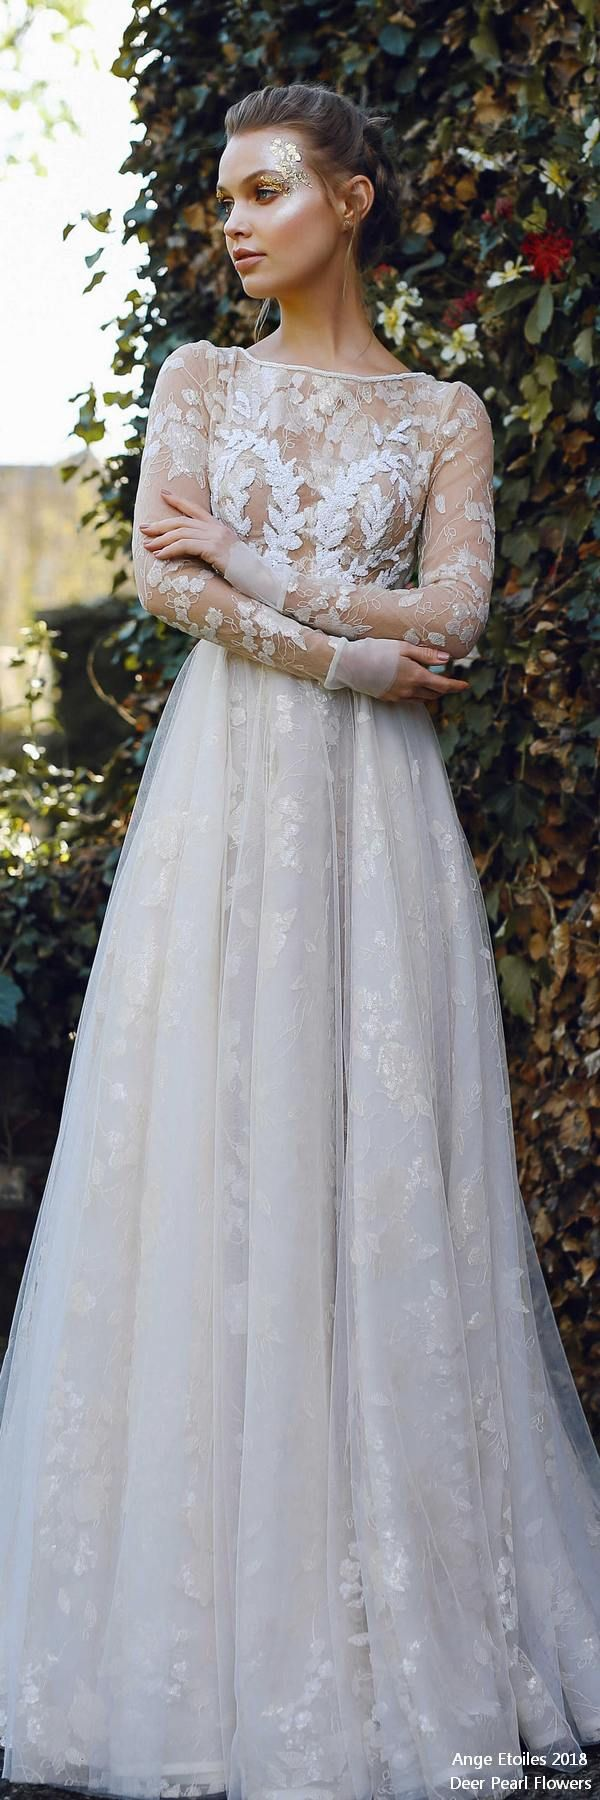 alternative wedding dress best 25 alternative wedding dresses ideas on 1273